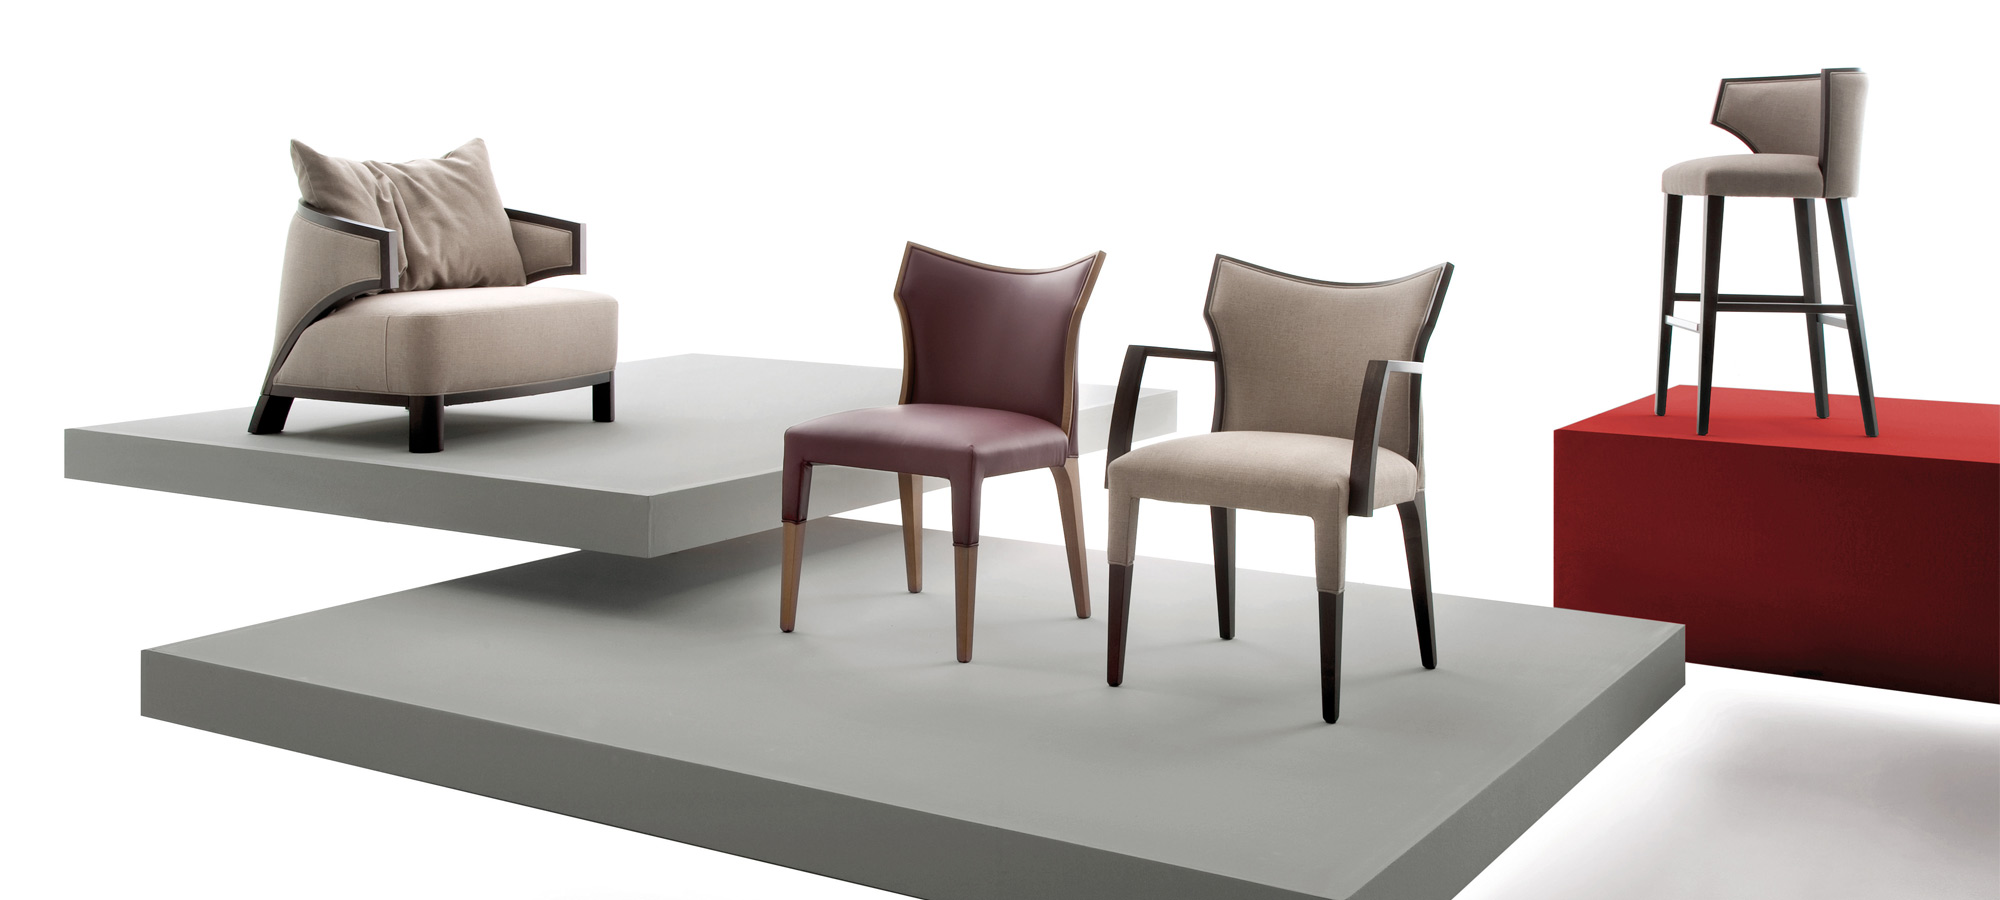 villa-collection-pietro-costantini-chairs